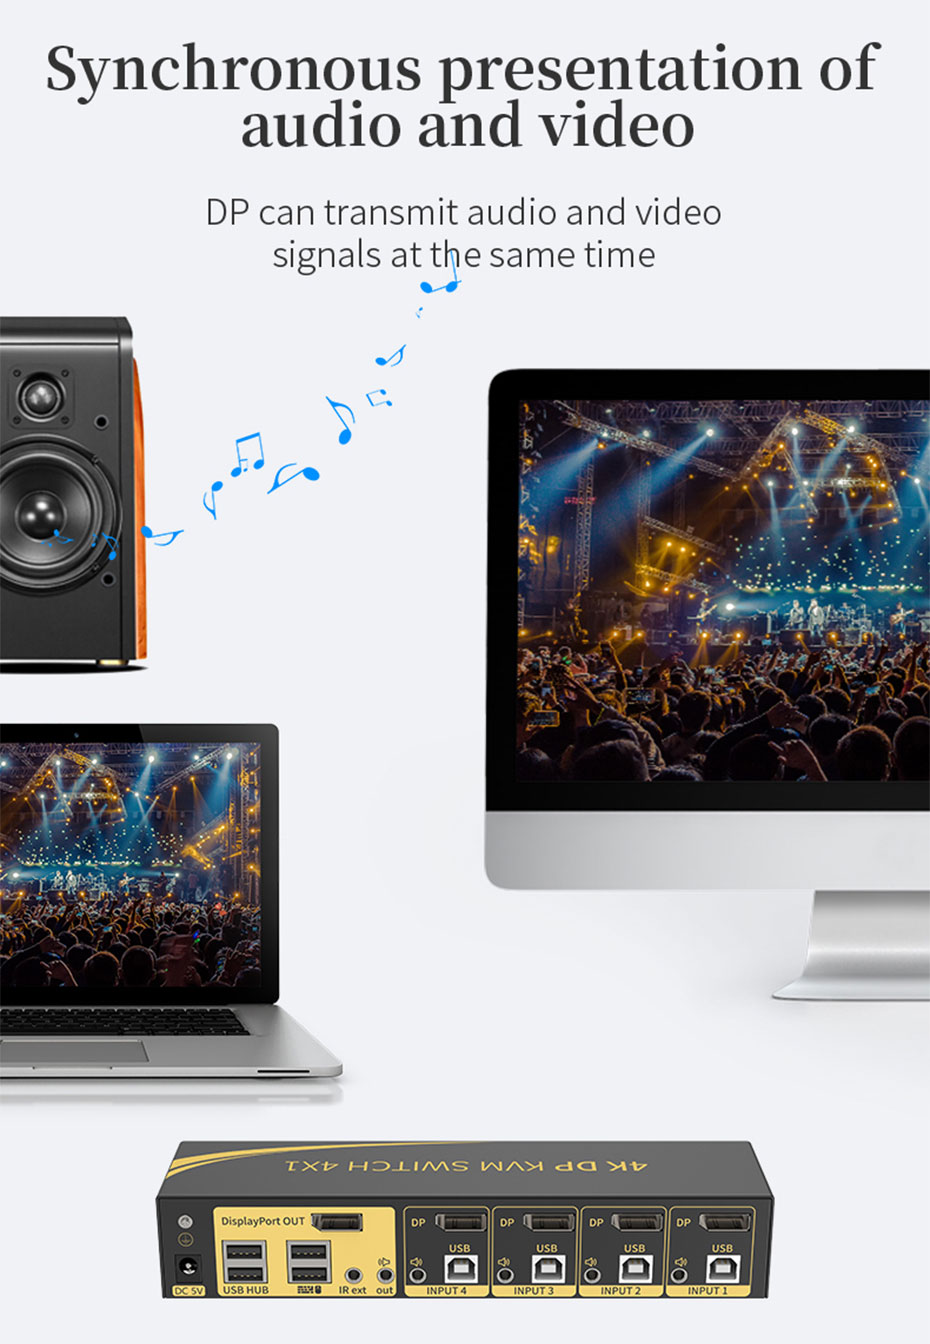 DP KVM switch 4 in 1 out 41DP supports simultaneous audio and video transmission